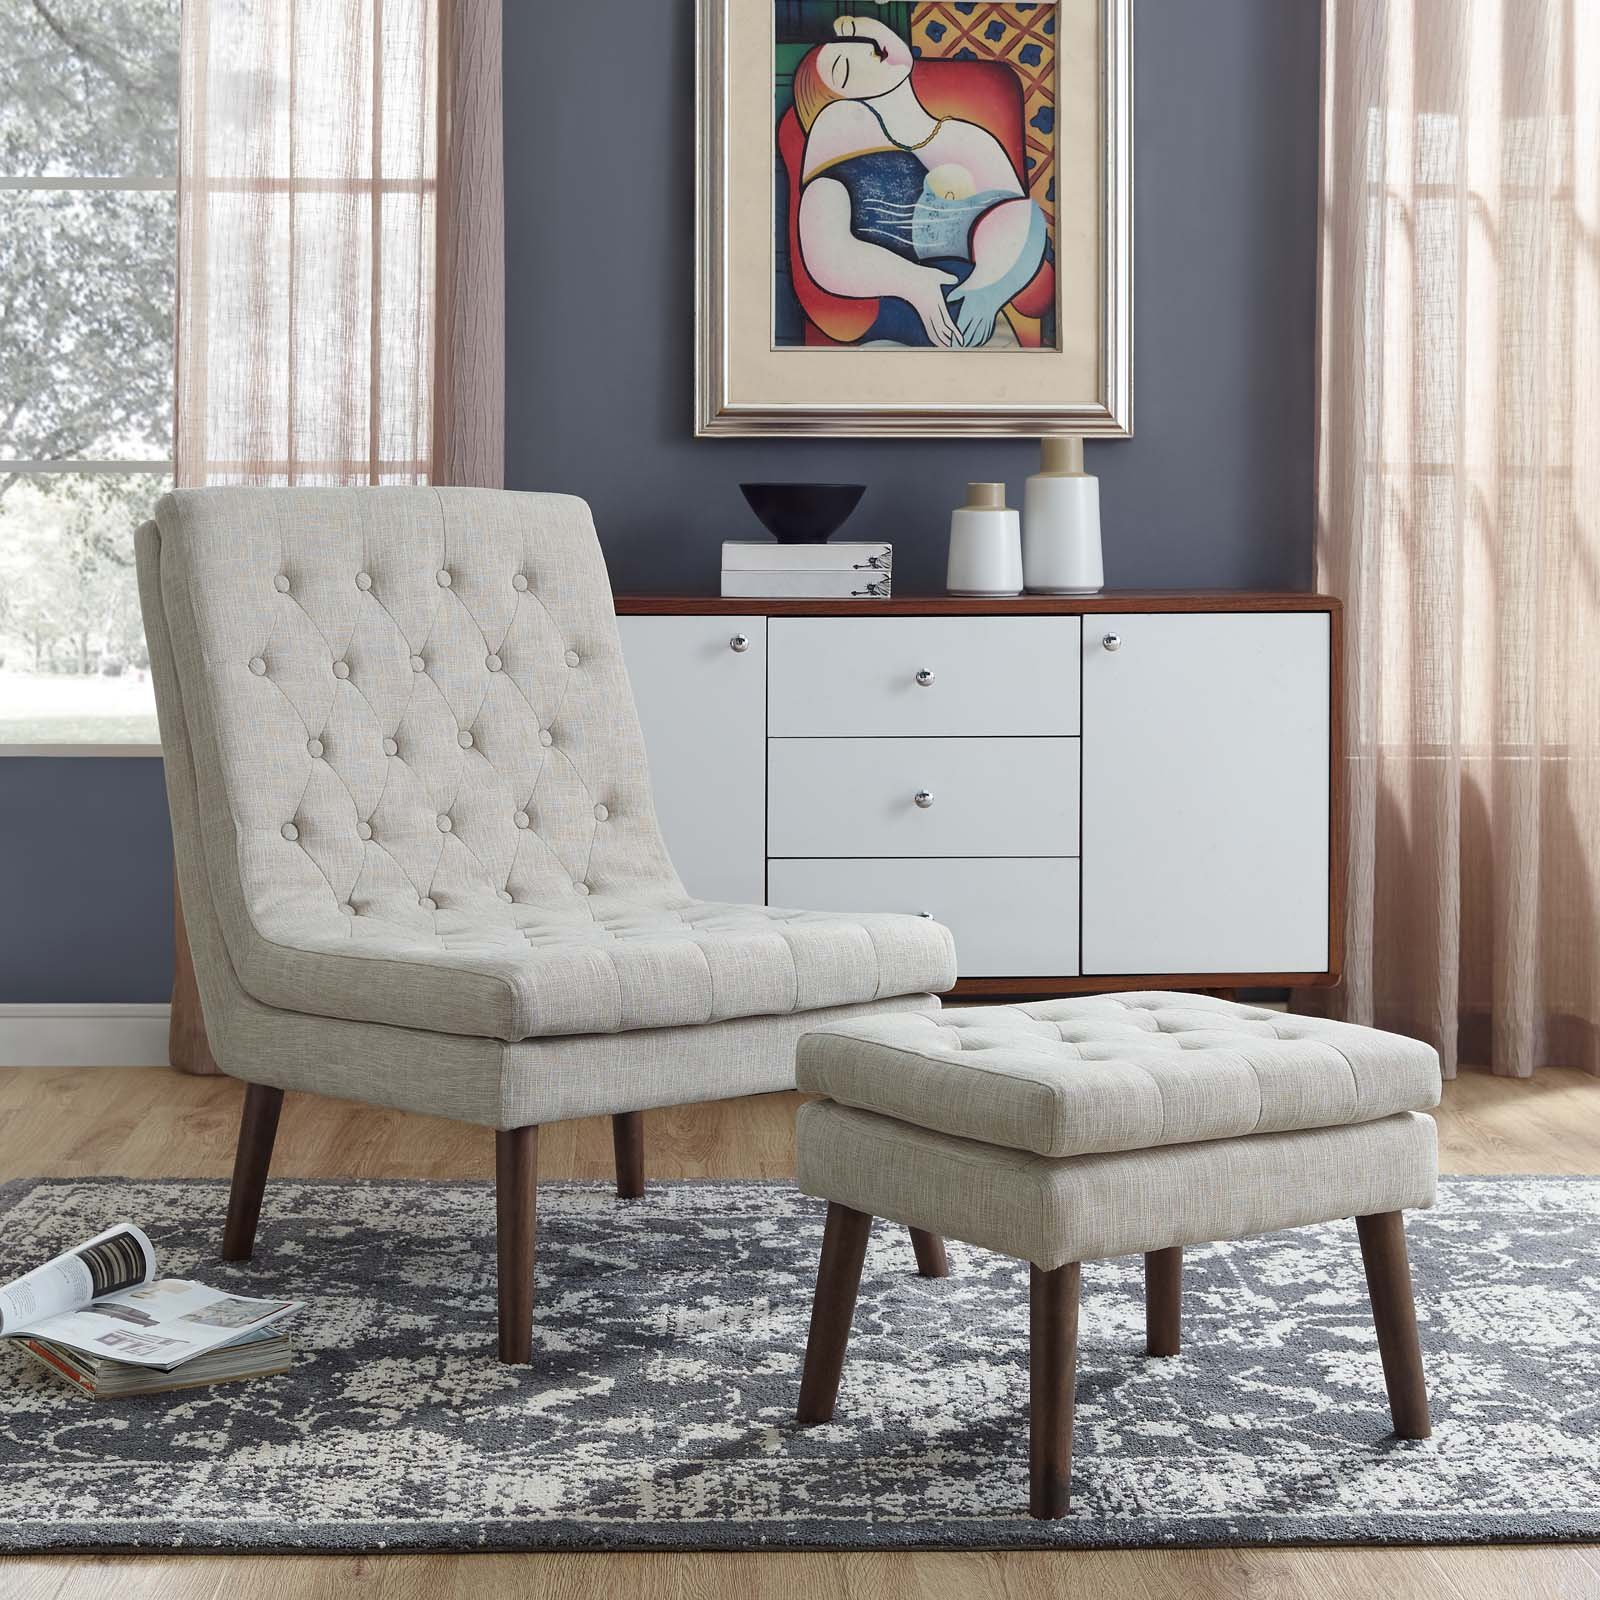 Modway Modify Tufted Modern Lounge Accent Chair and Ottoman Set in Beige by Modway